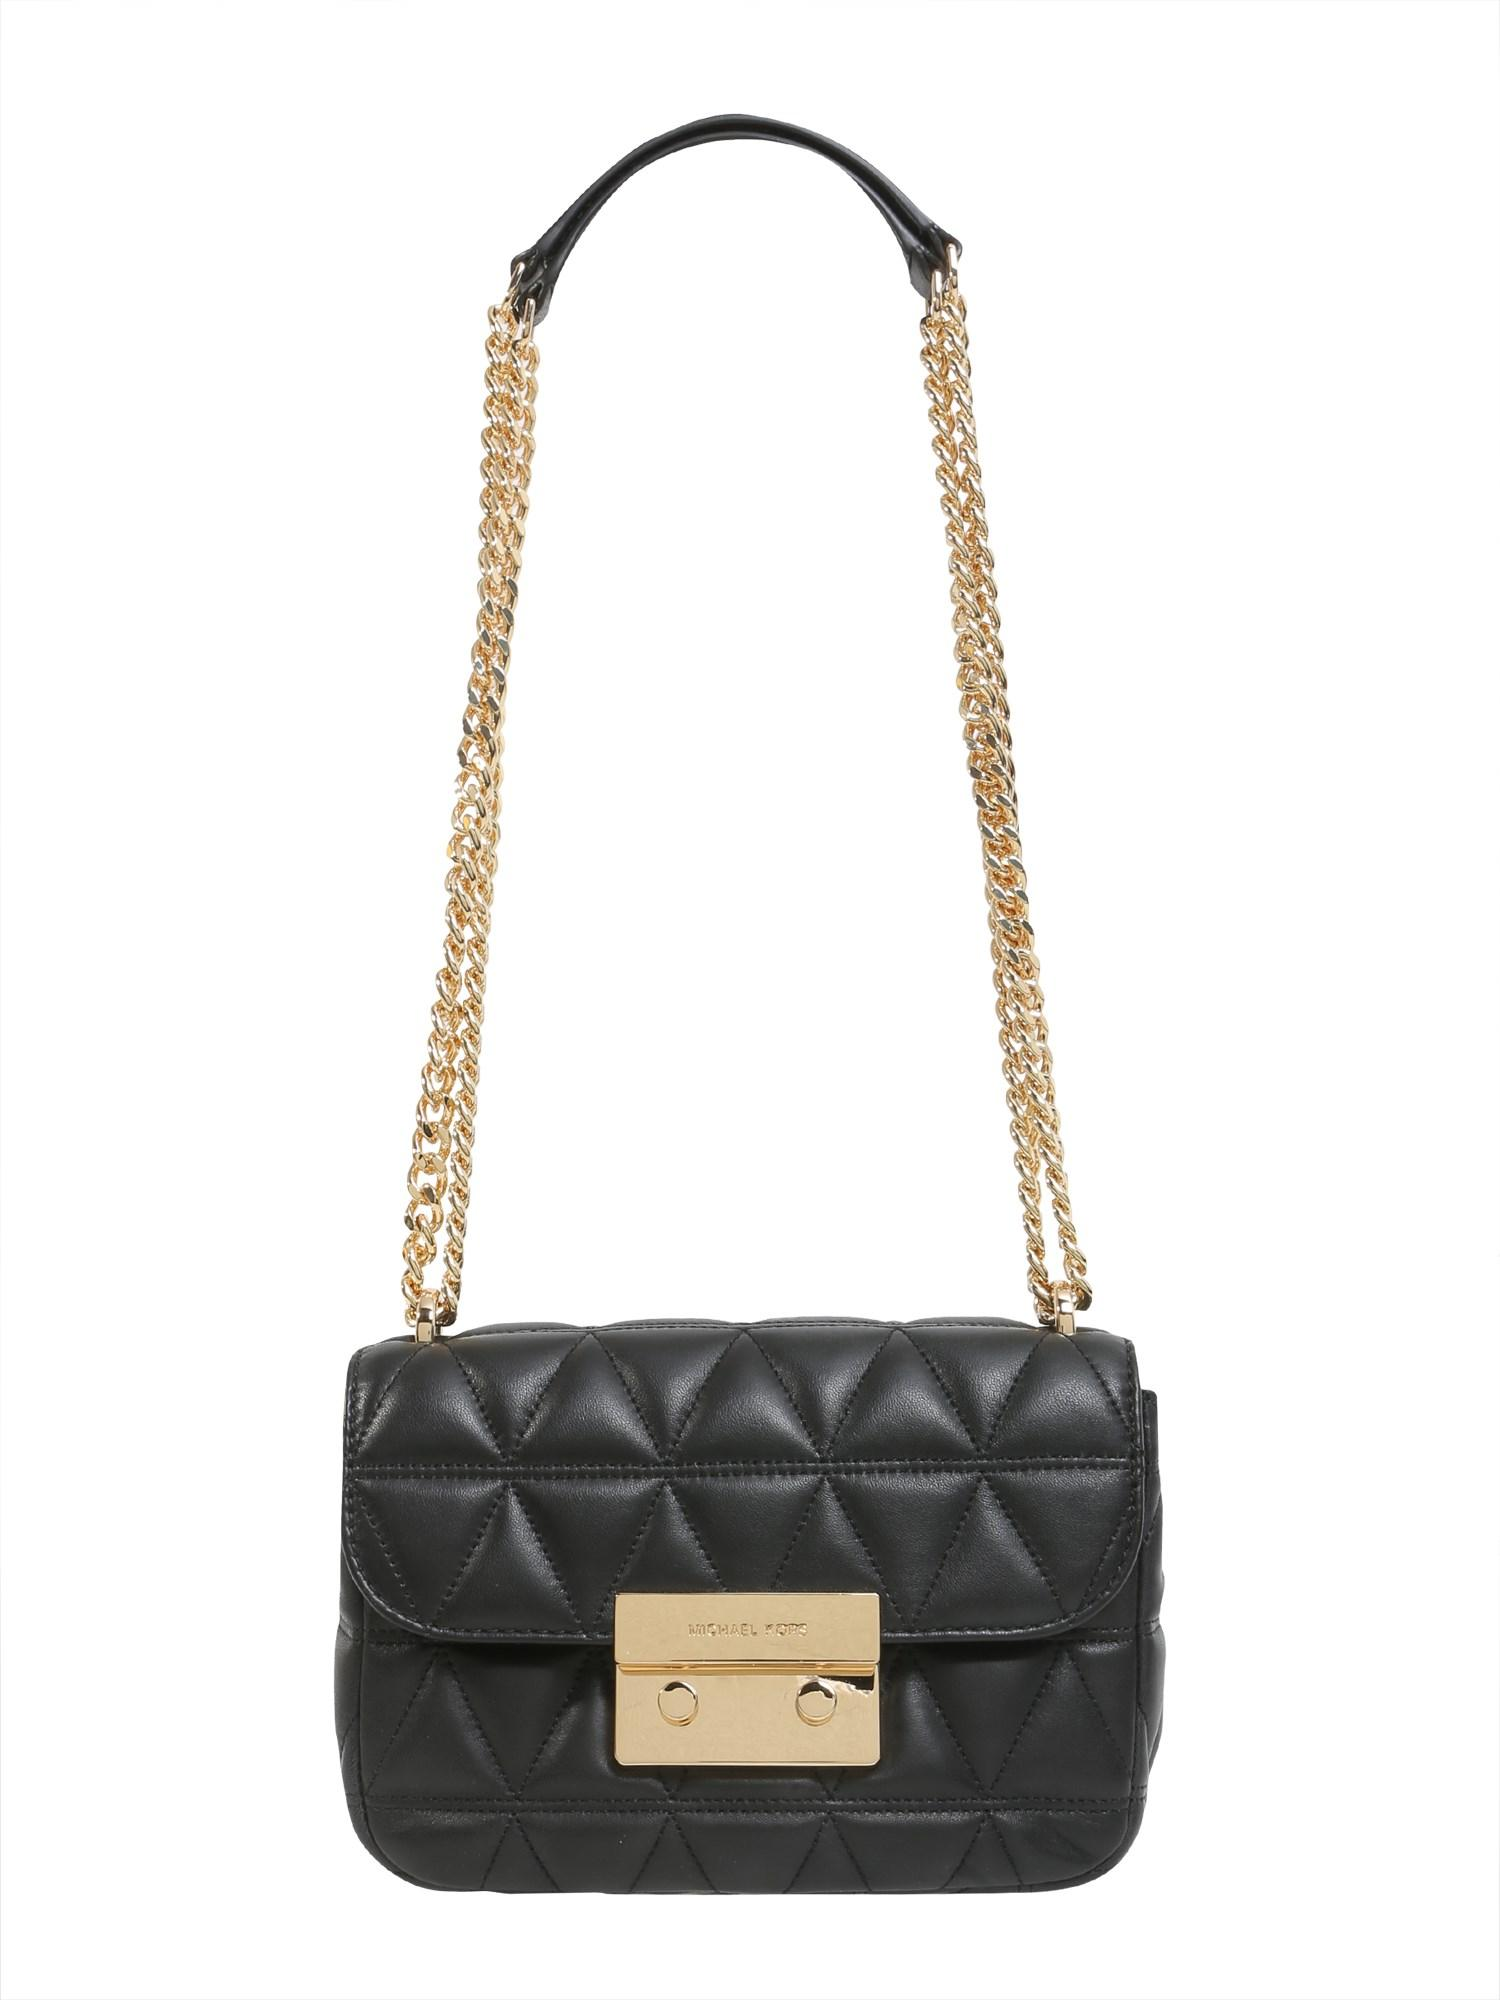 cbd115cd71c8 MICHAEL Michael Kors Sloan Small Messenger Bag In Quilted Leather in Black  - Lyst